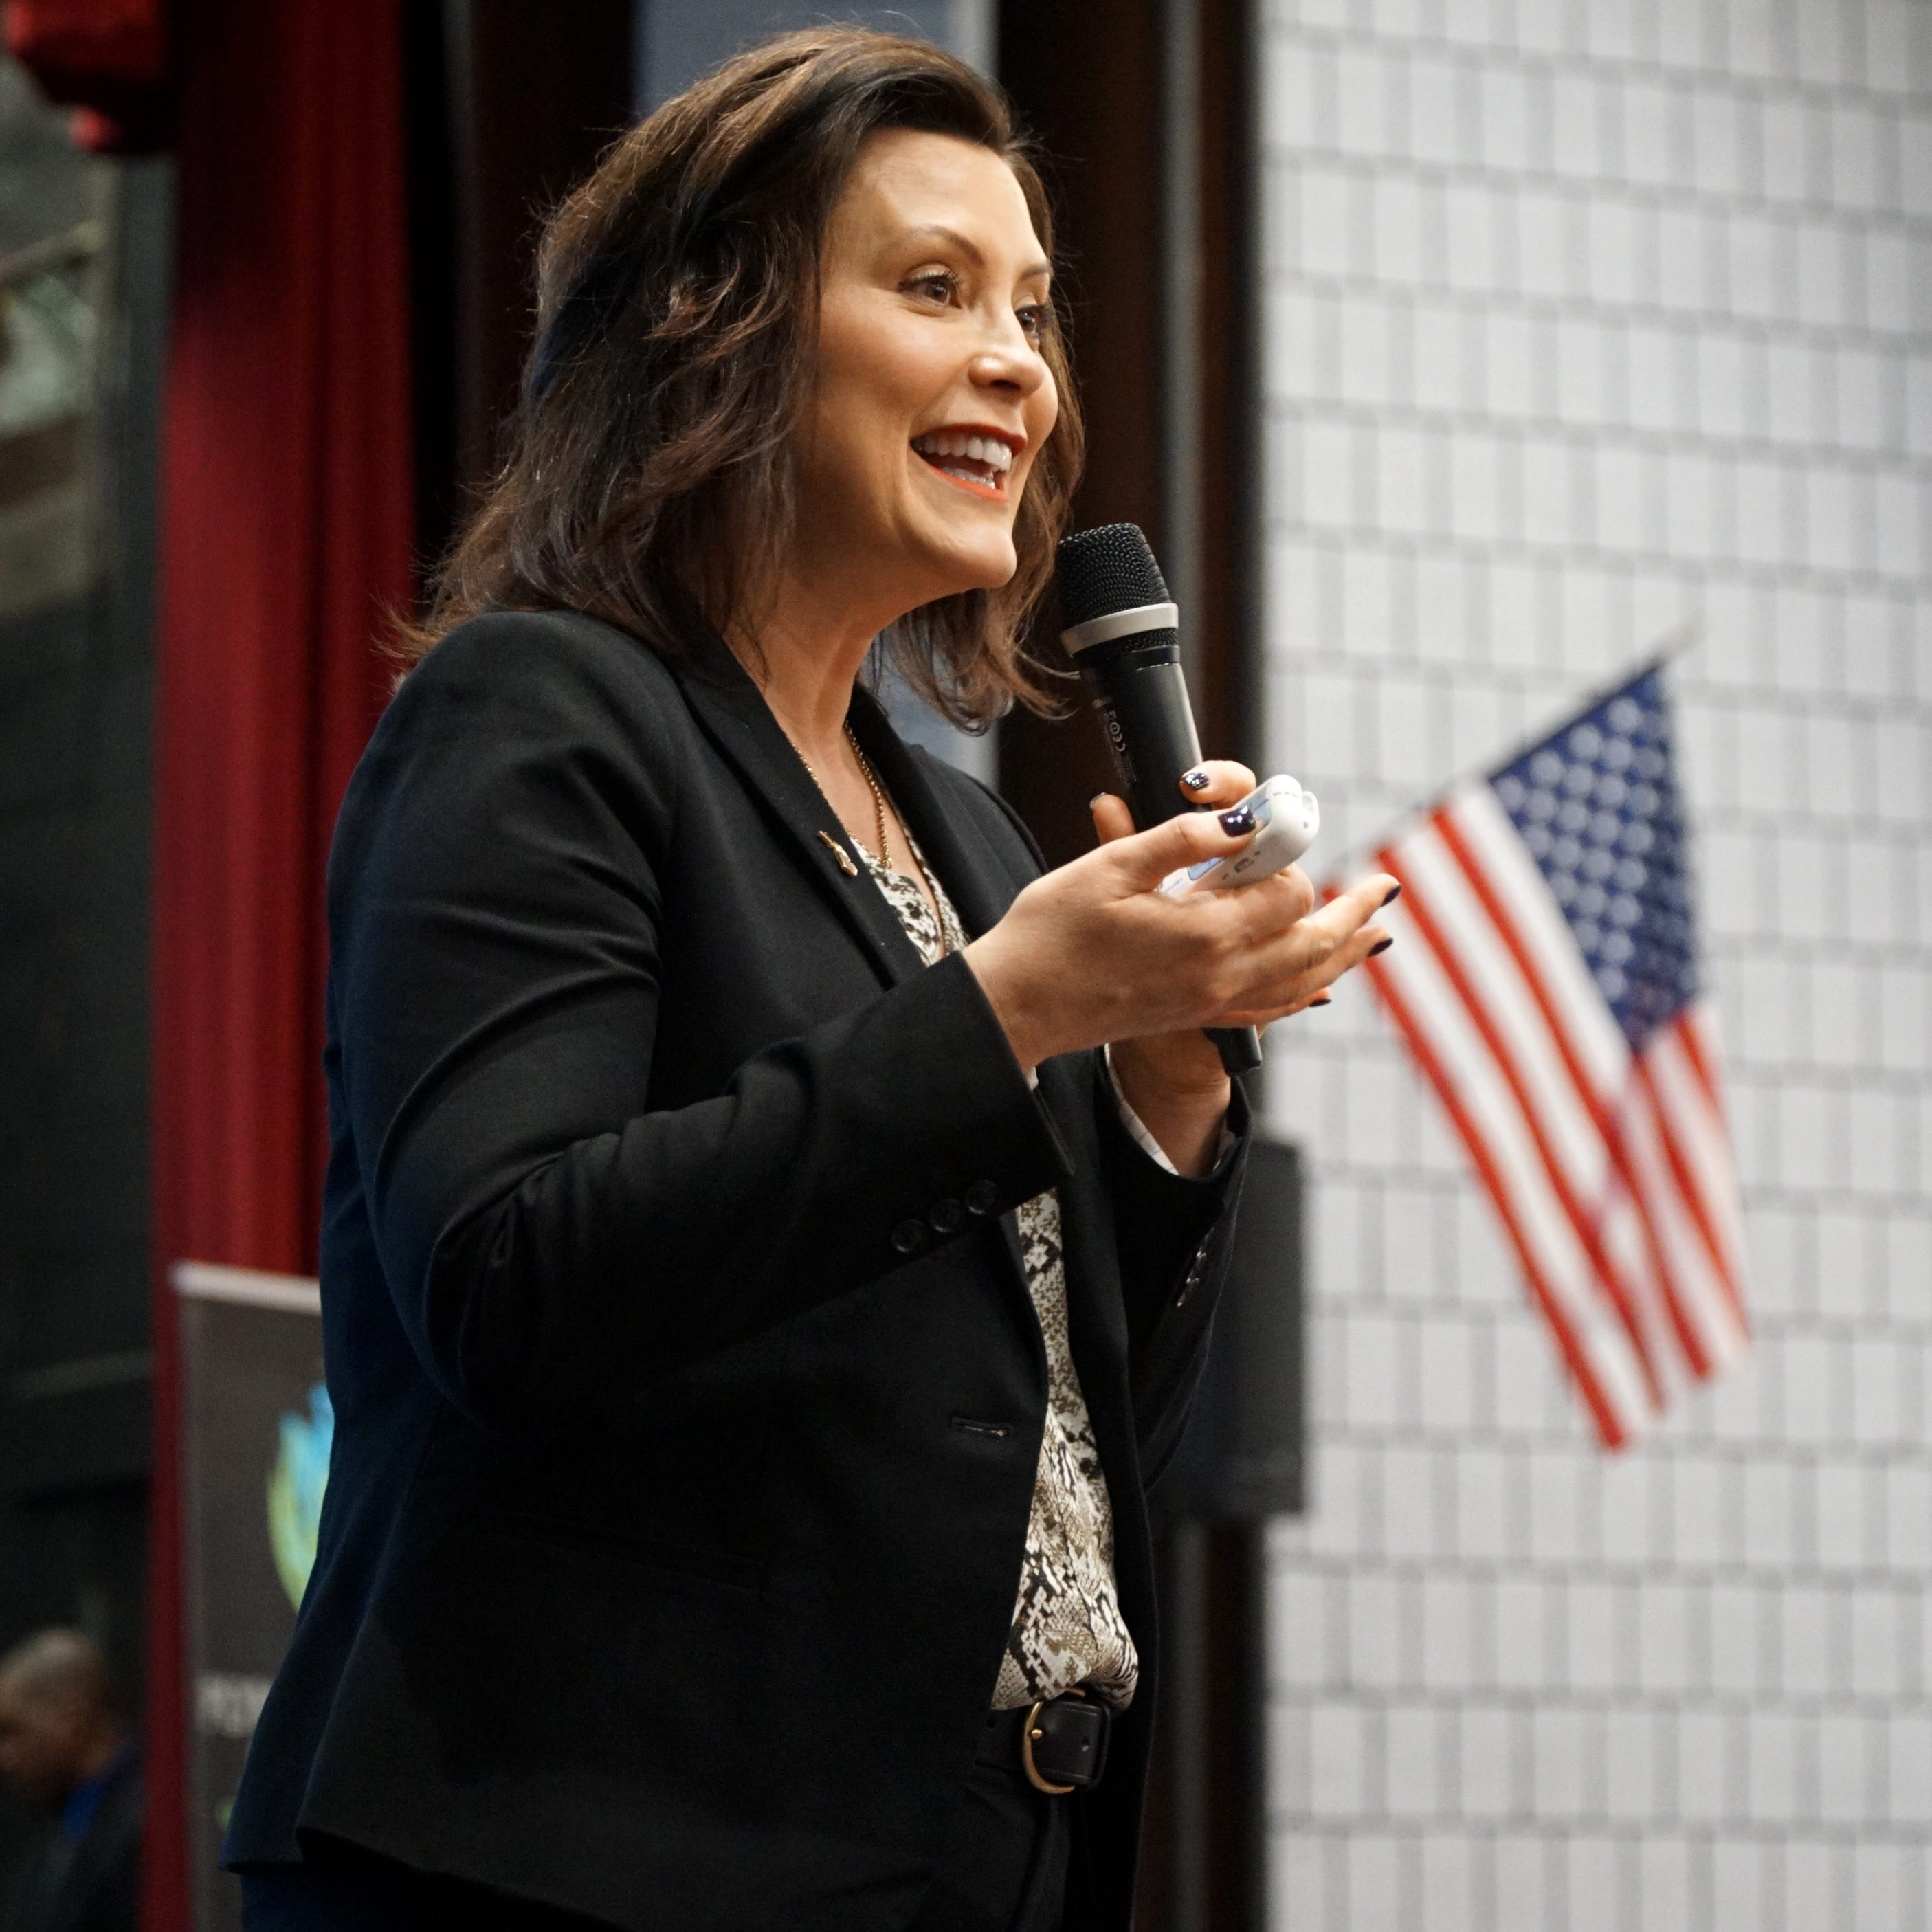 Gov. Whitmer: Boosting public education funding is a priority